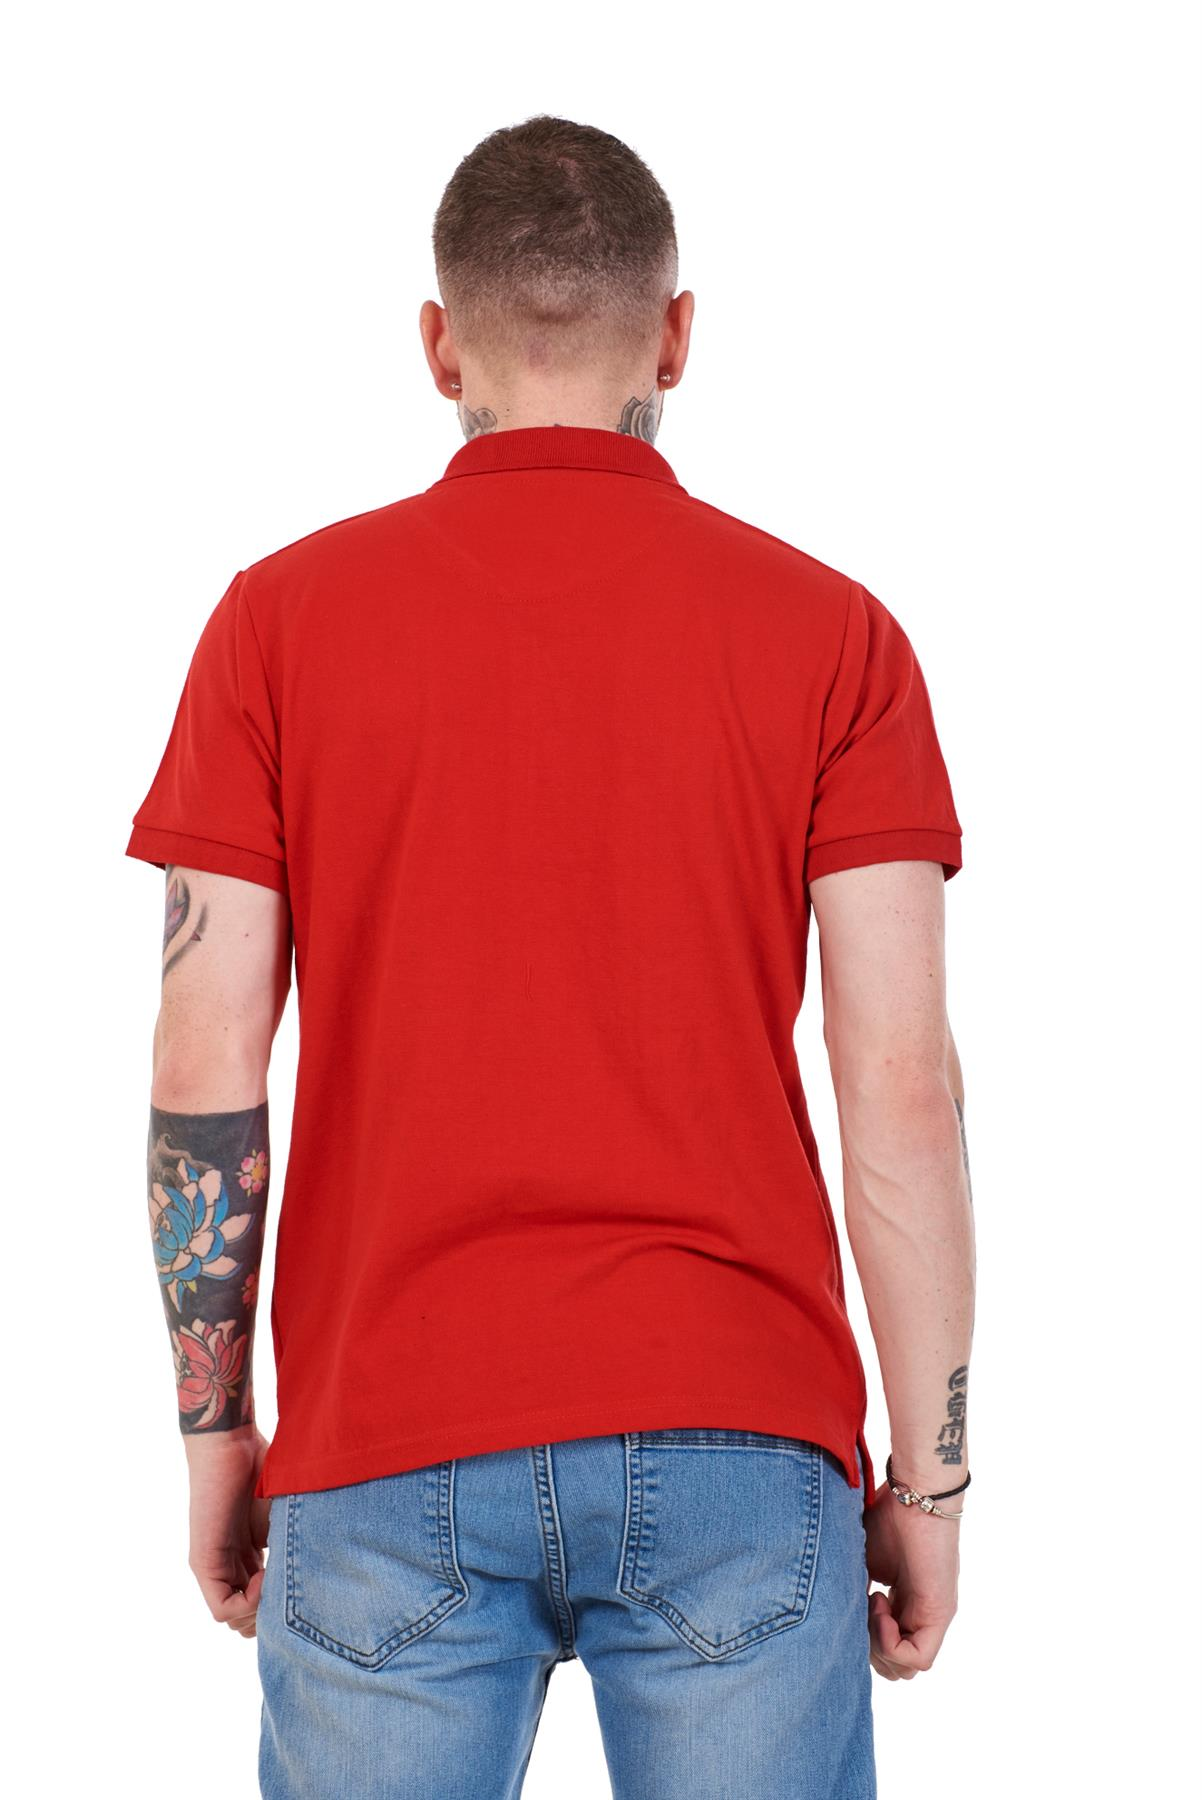 Mens-Cotton-T-Shirts-Regular-fit-Plain-Polo-Pocket-Casual-Formal-Shirt-Top-M-XXL thumbnail 26